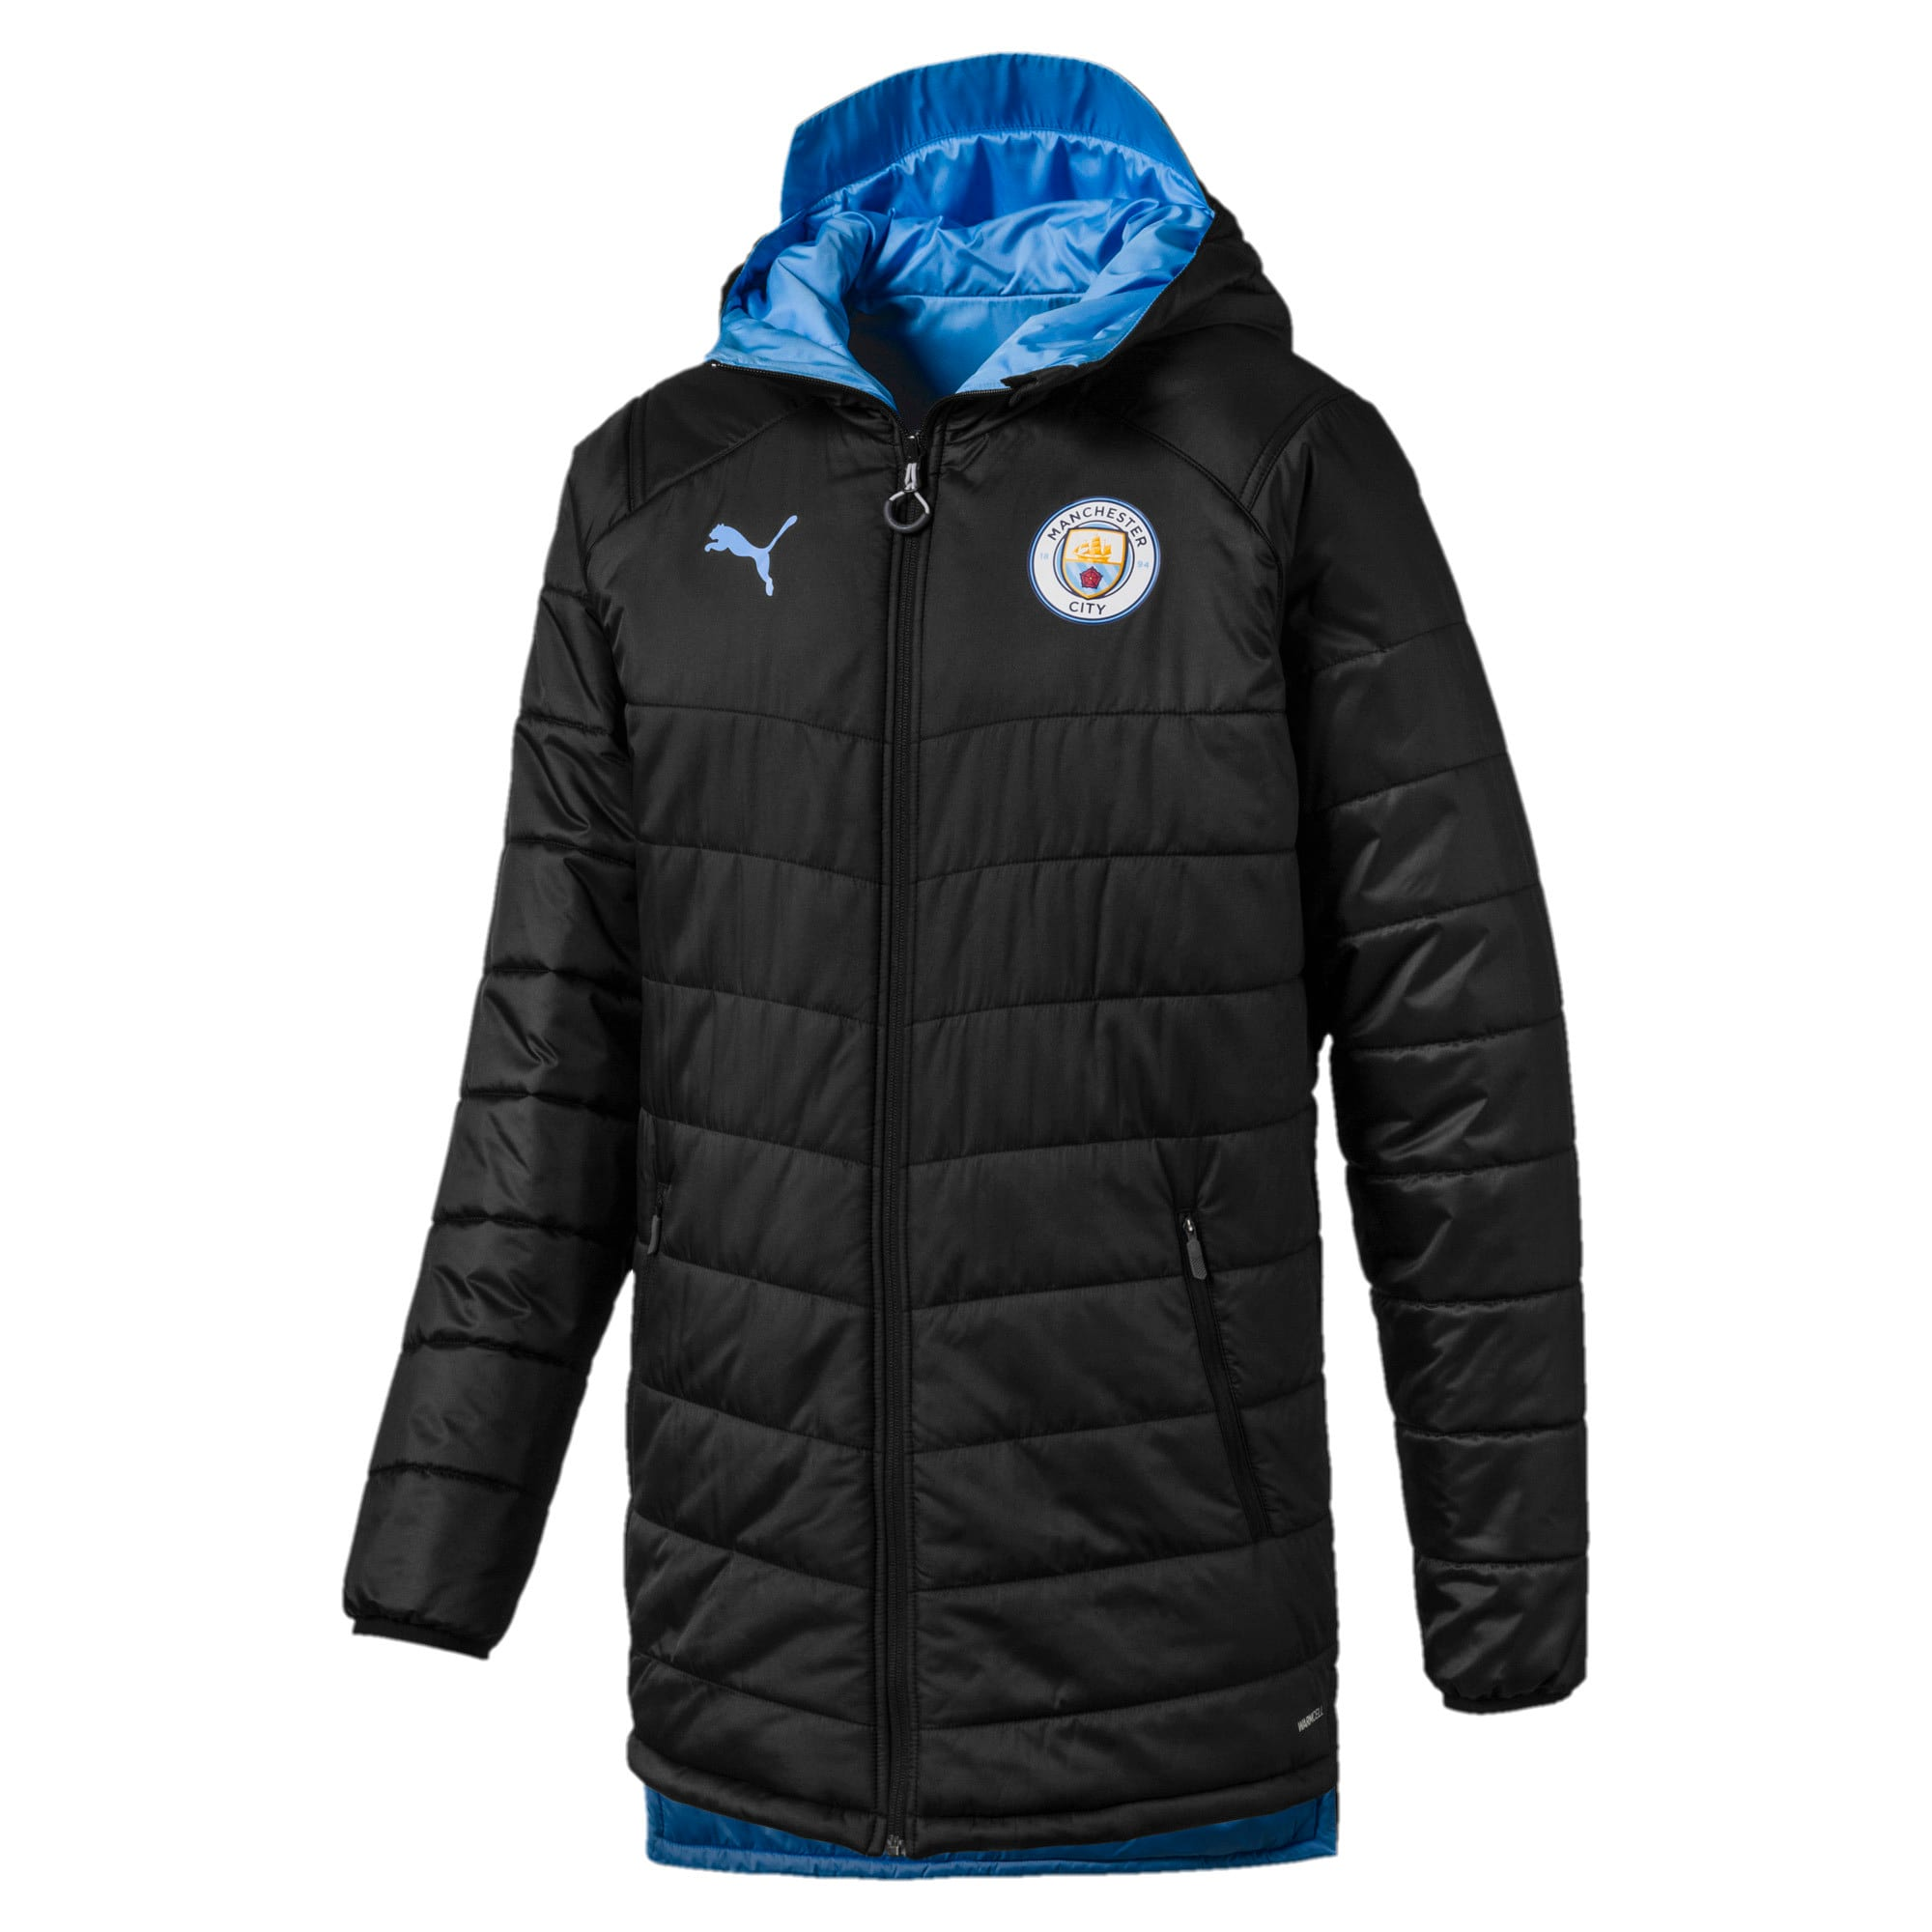 new styles 29ad7 473a5 Giacca double-face Manchester City replica uomo